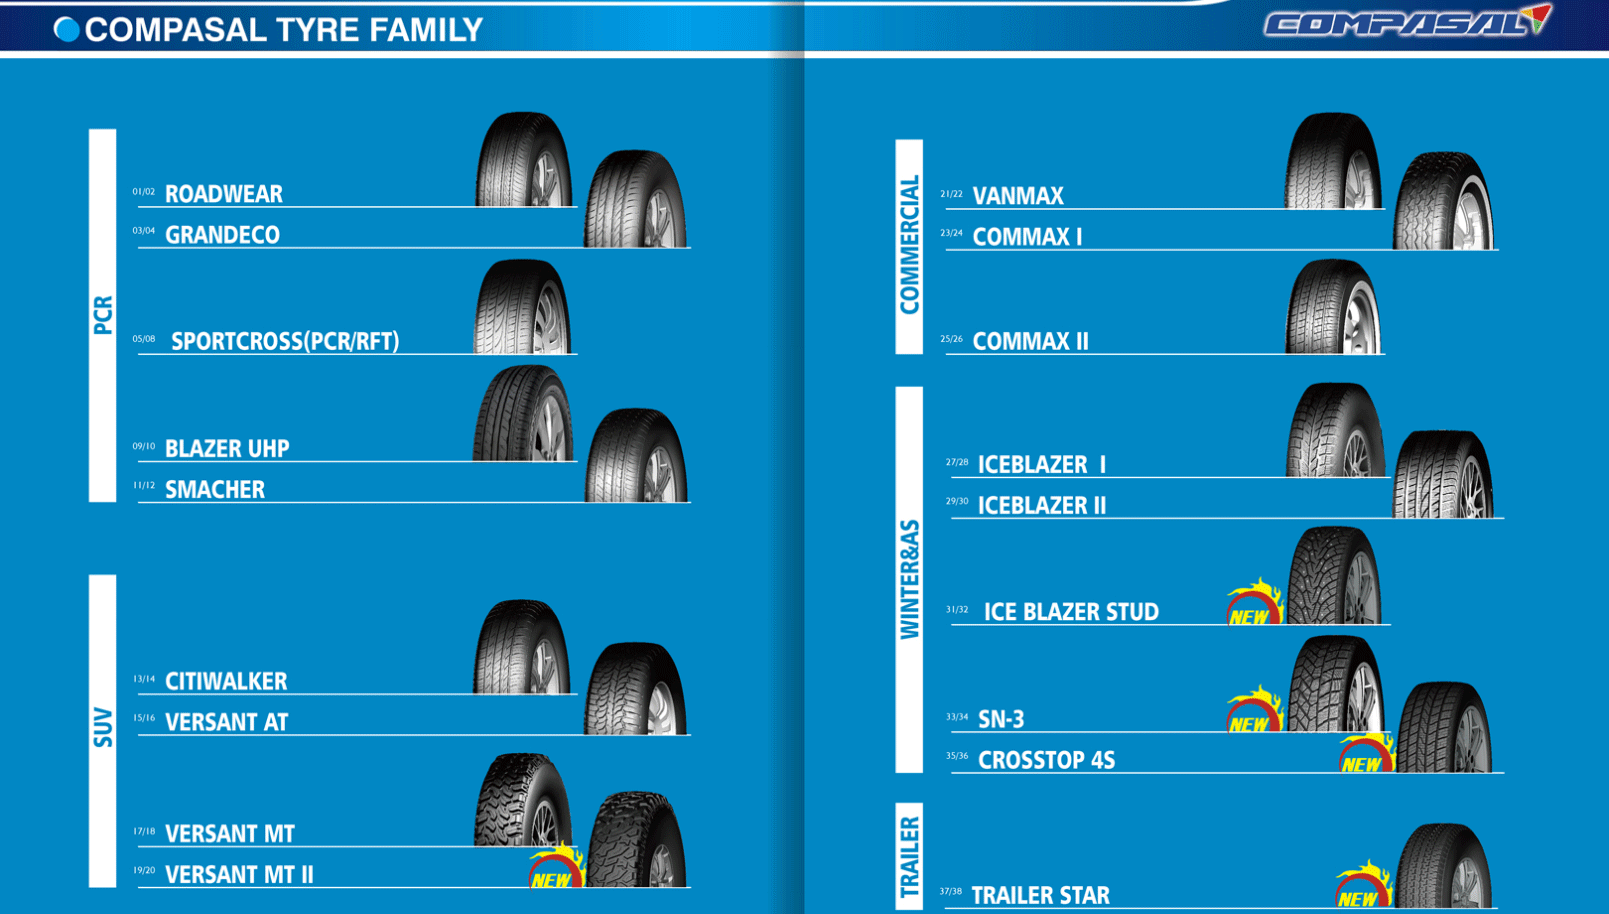 compasal tyre manufacturer